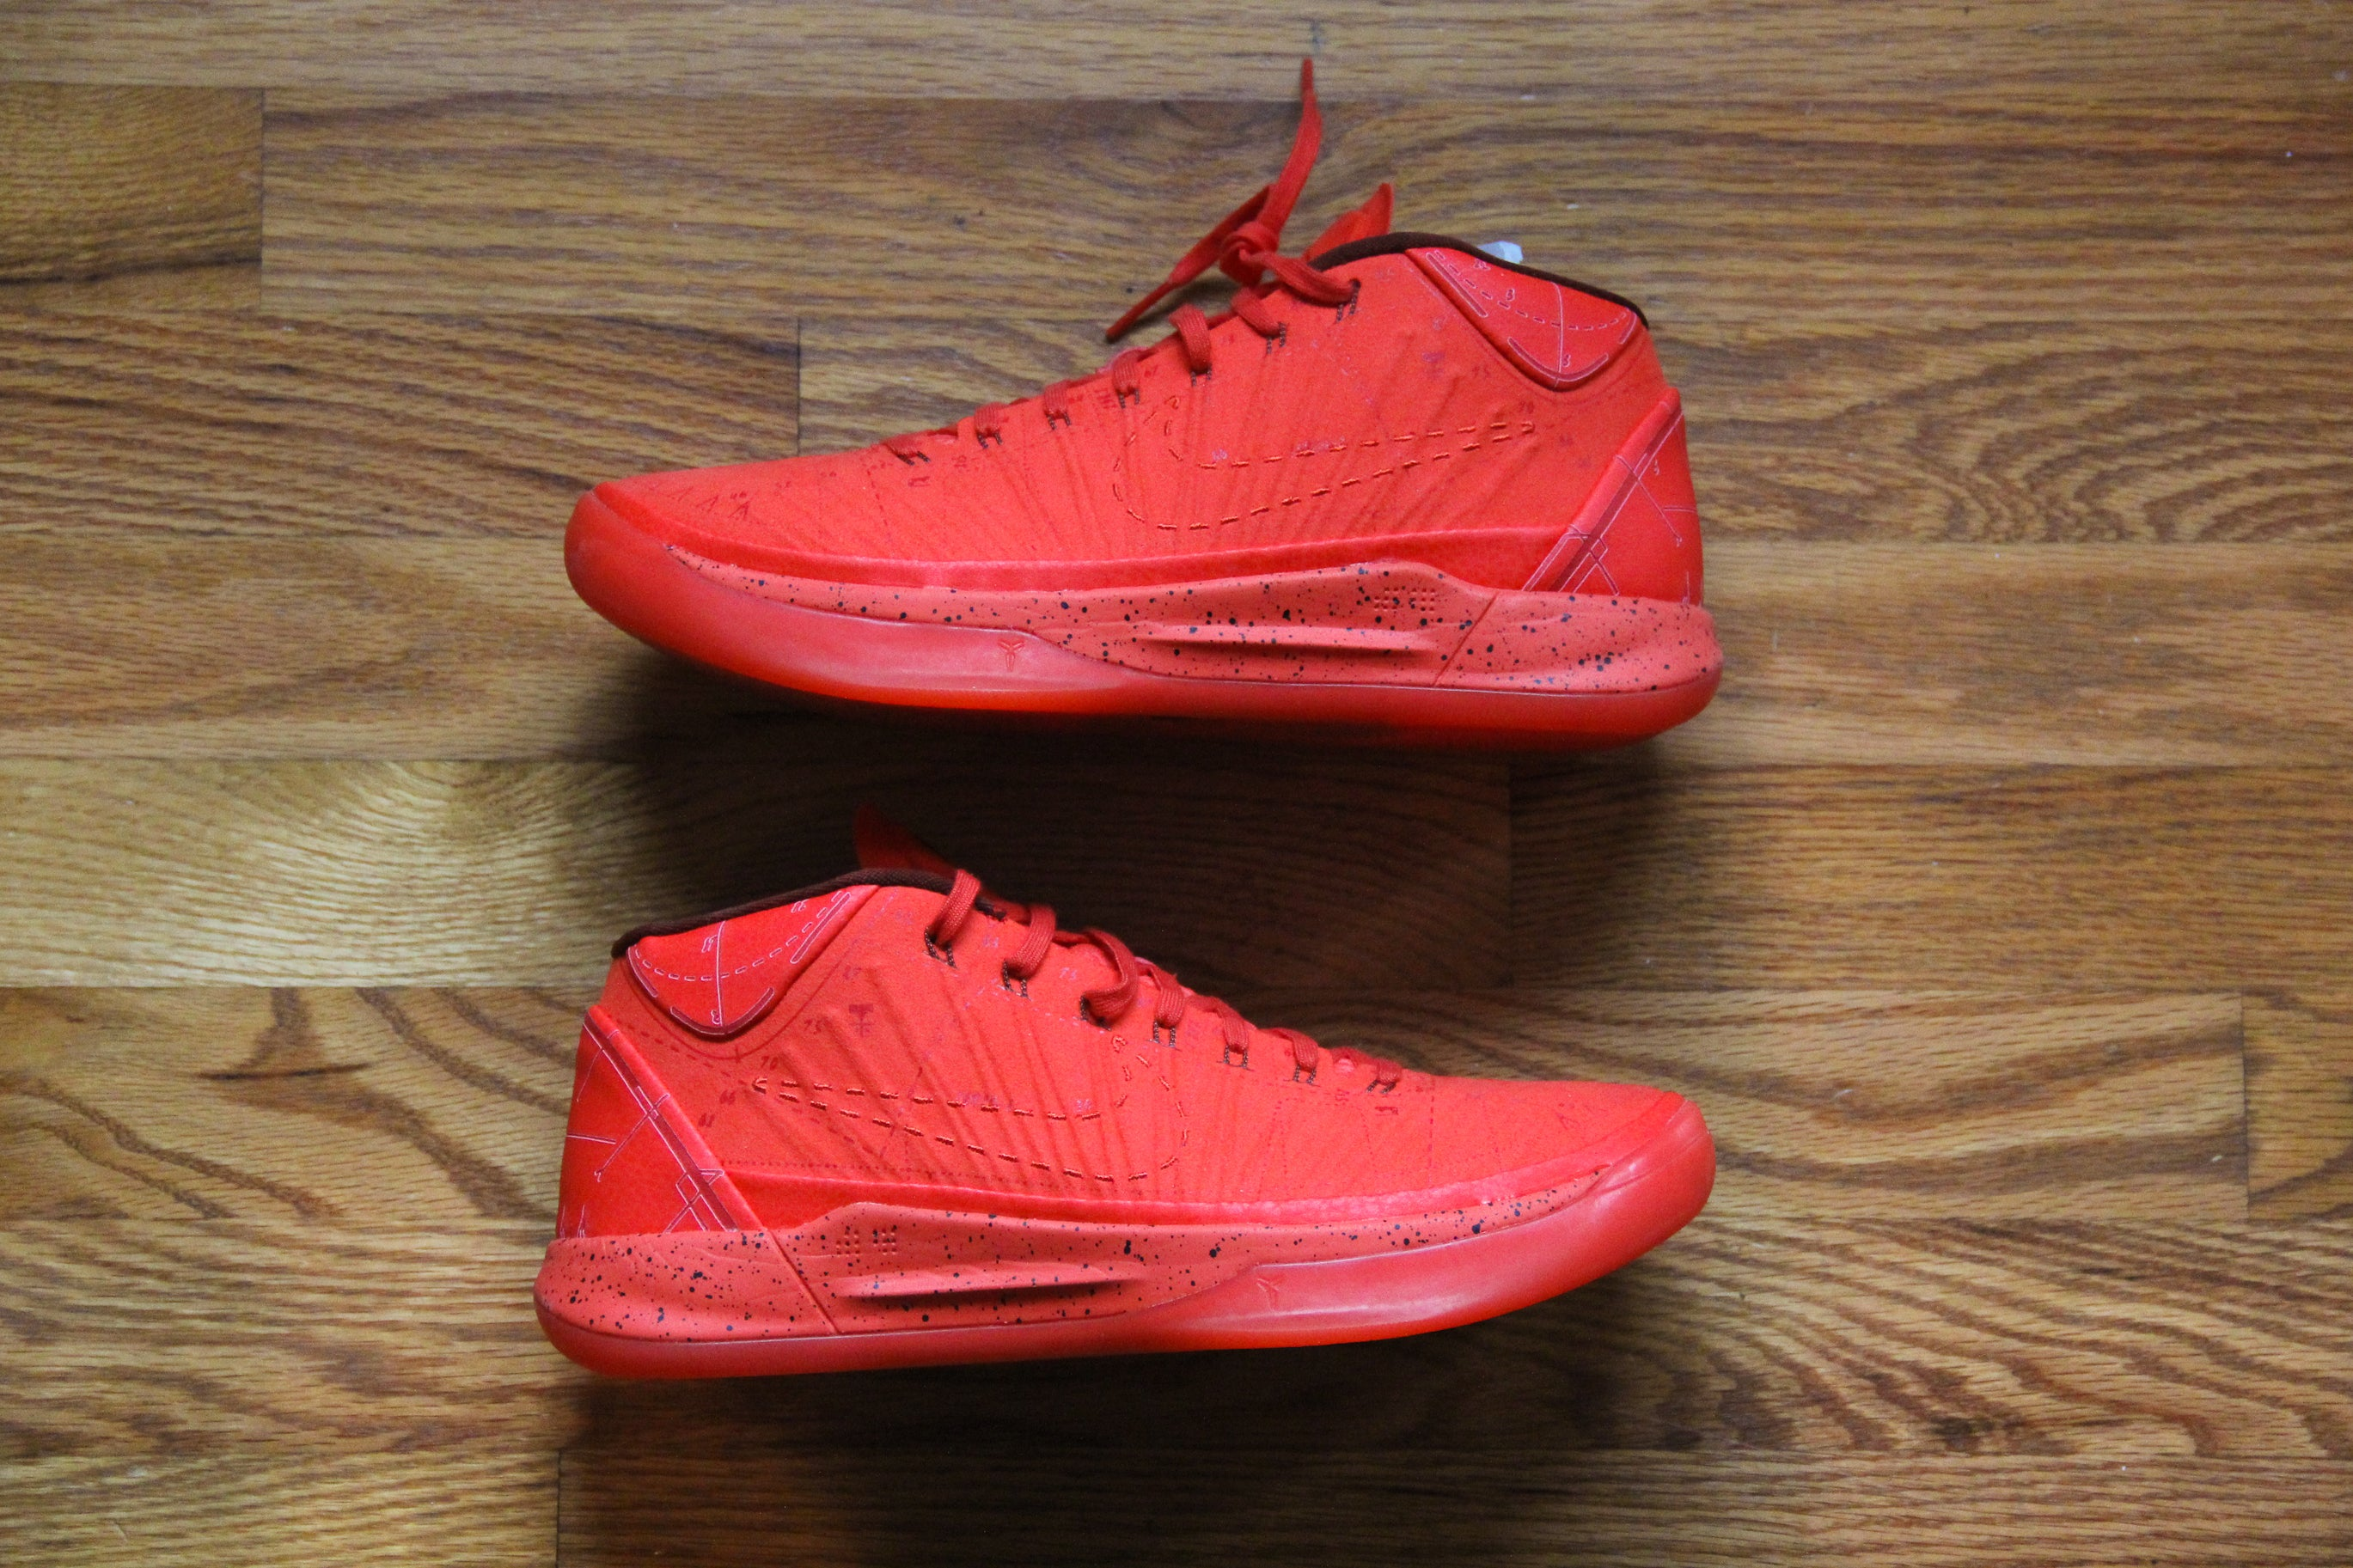 online retailer d5197 3aa7b Nike Kobe A.D. Mid Passion Red – Sneaker Warz